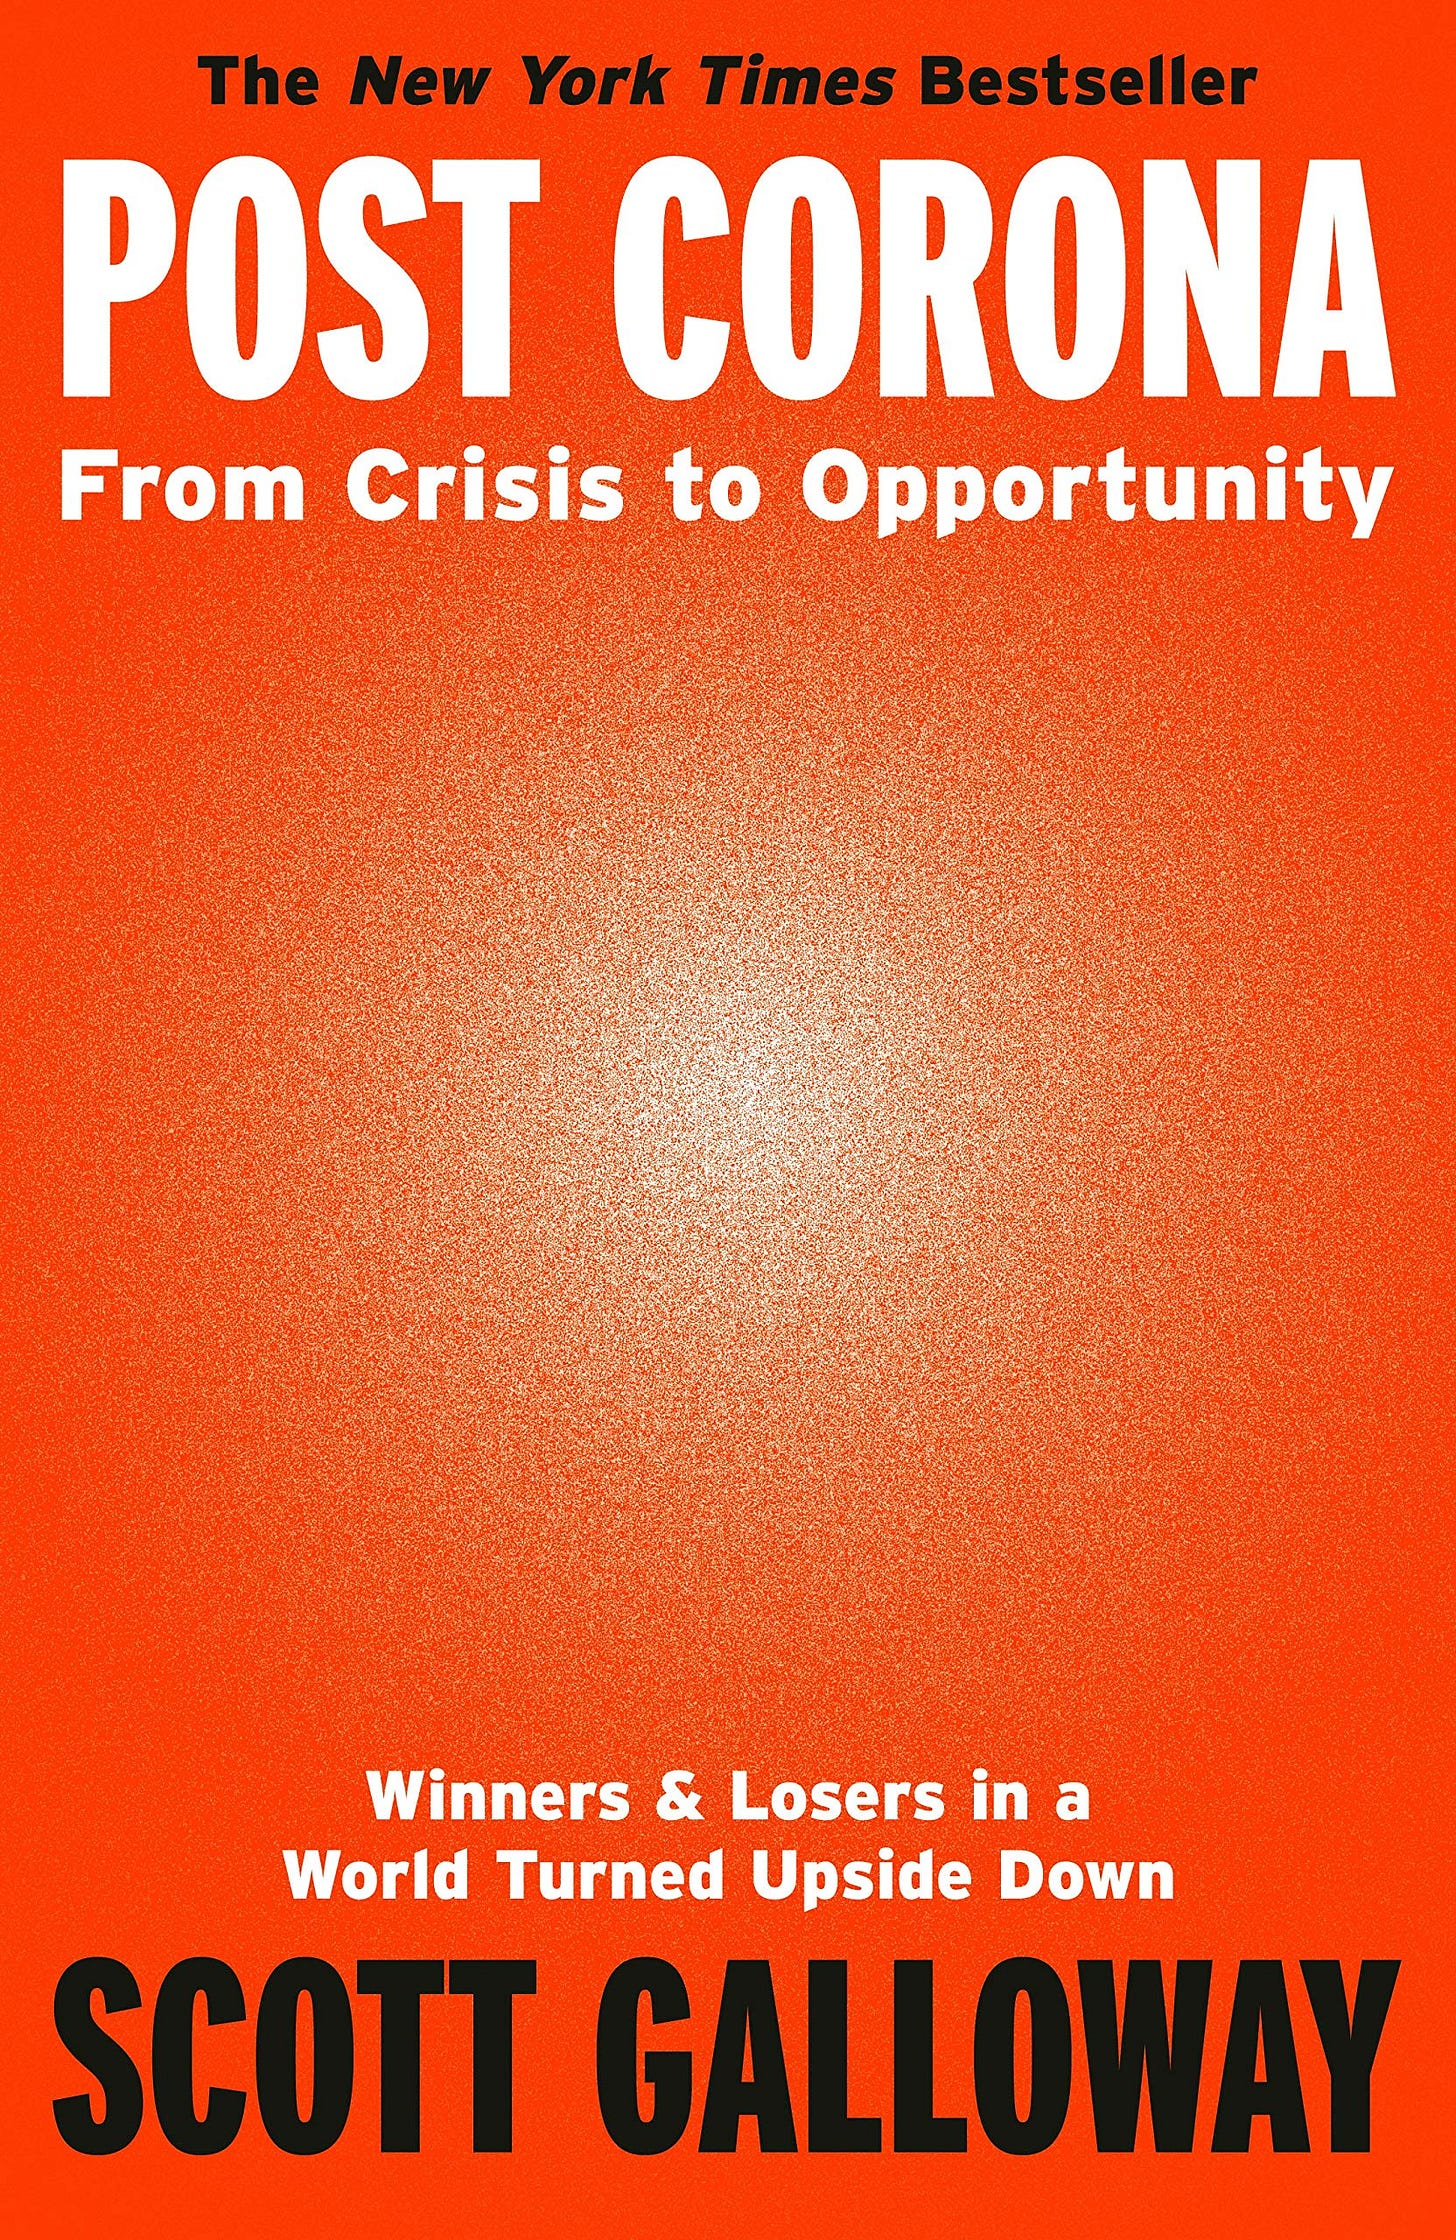 Post Corona: From Crisis to Opportunity | Amazon.com.br